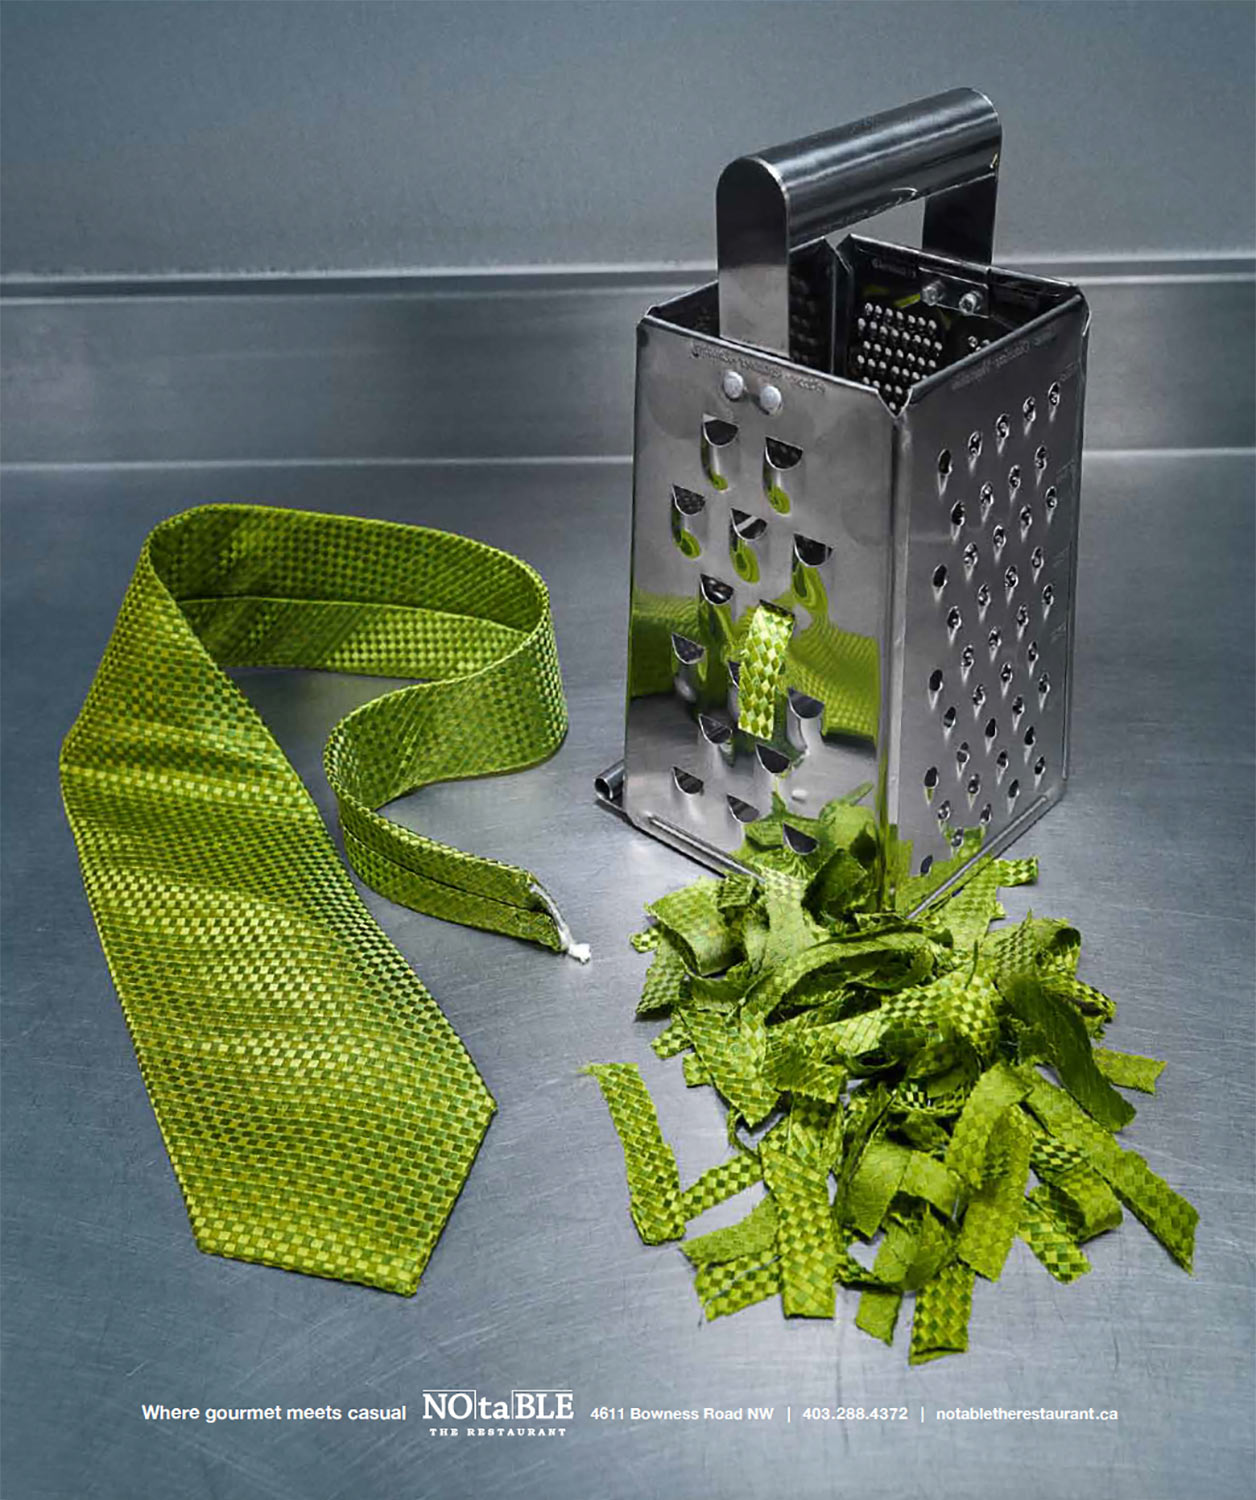 Notable ad, grater